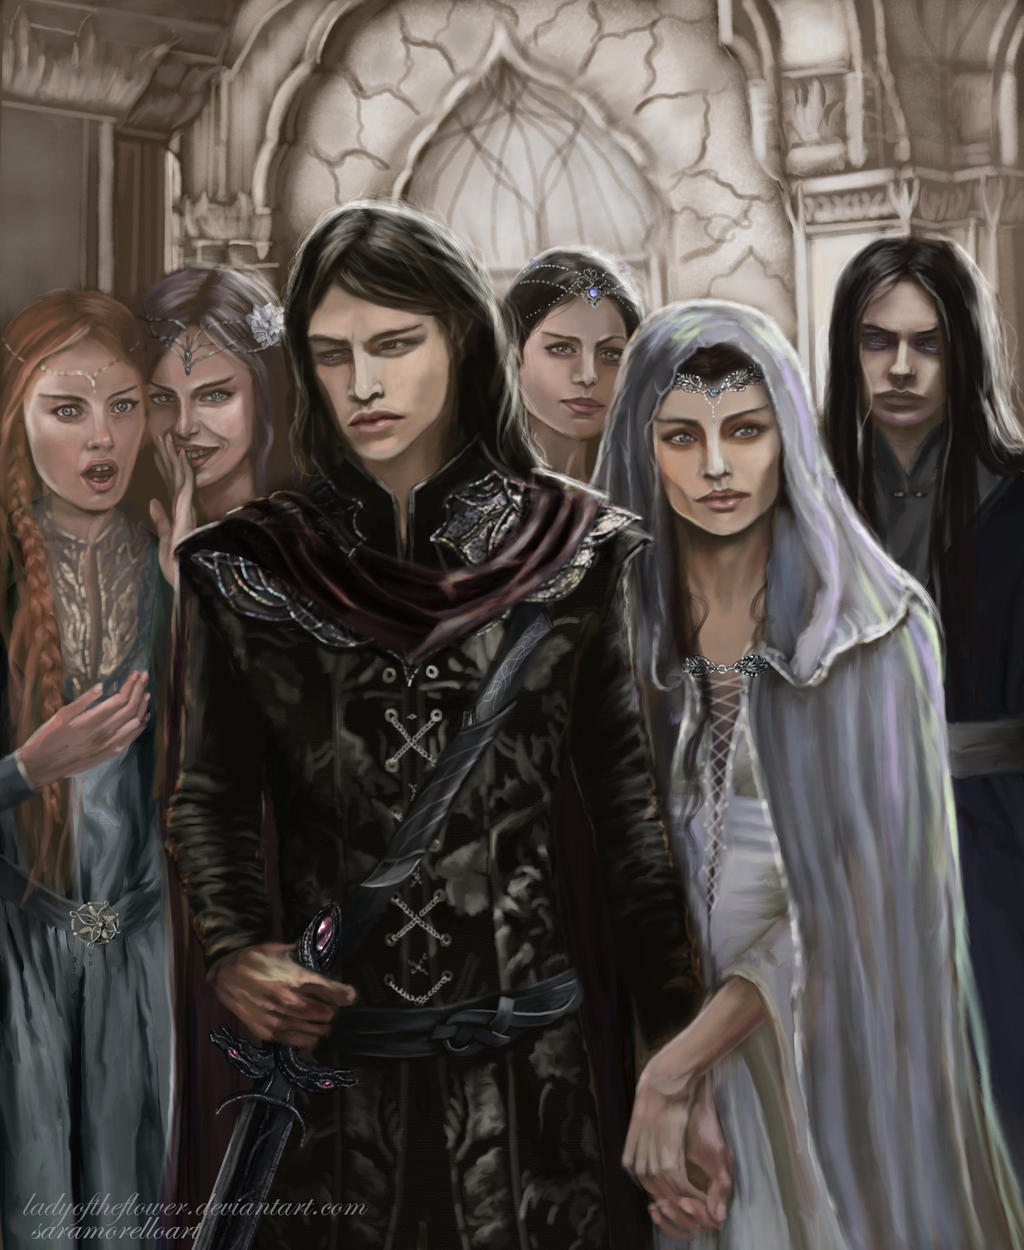 Half Noldor - Aredhel and Maeglin return